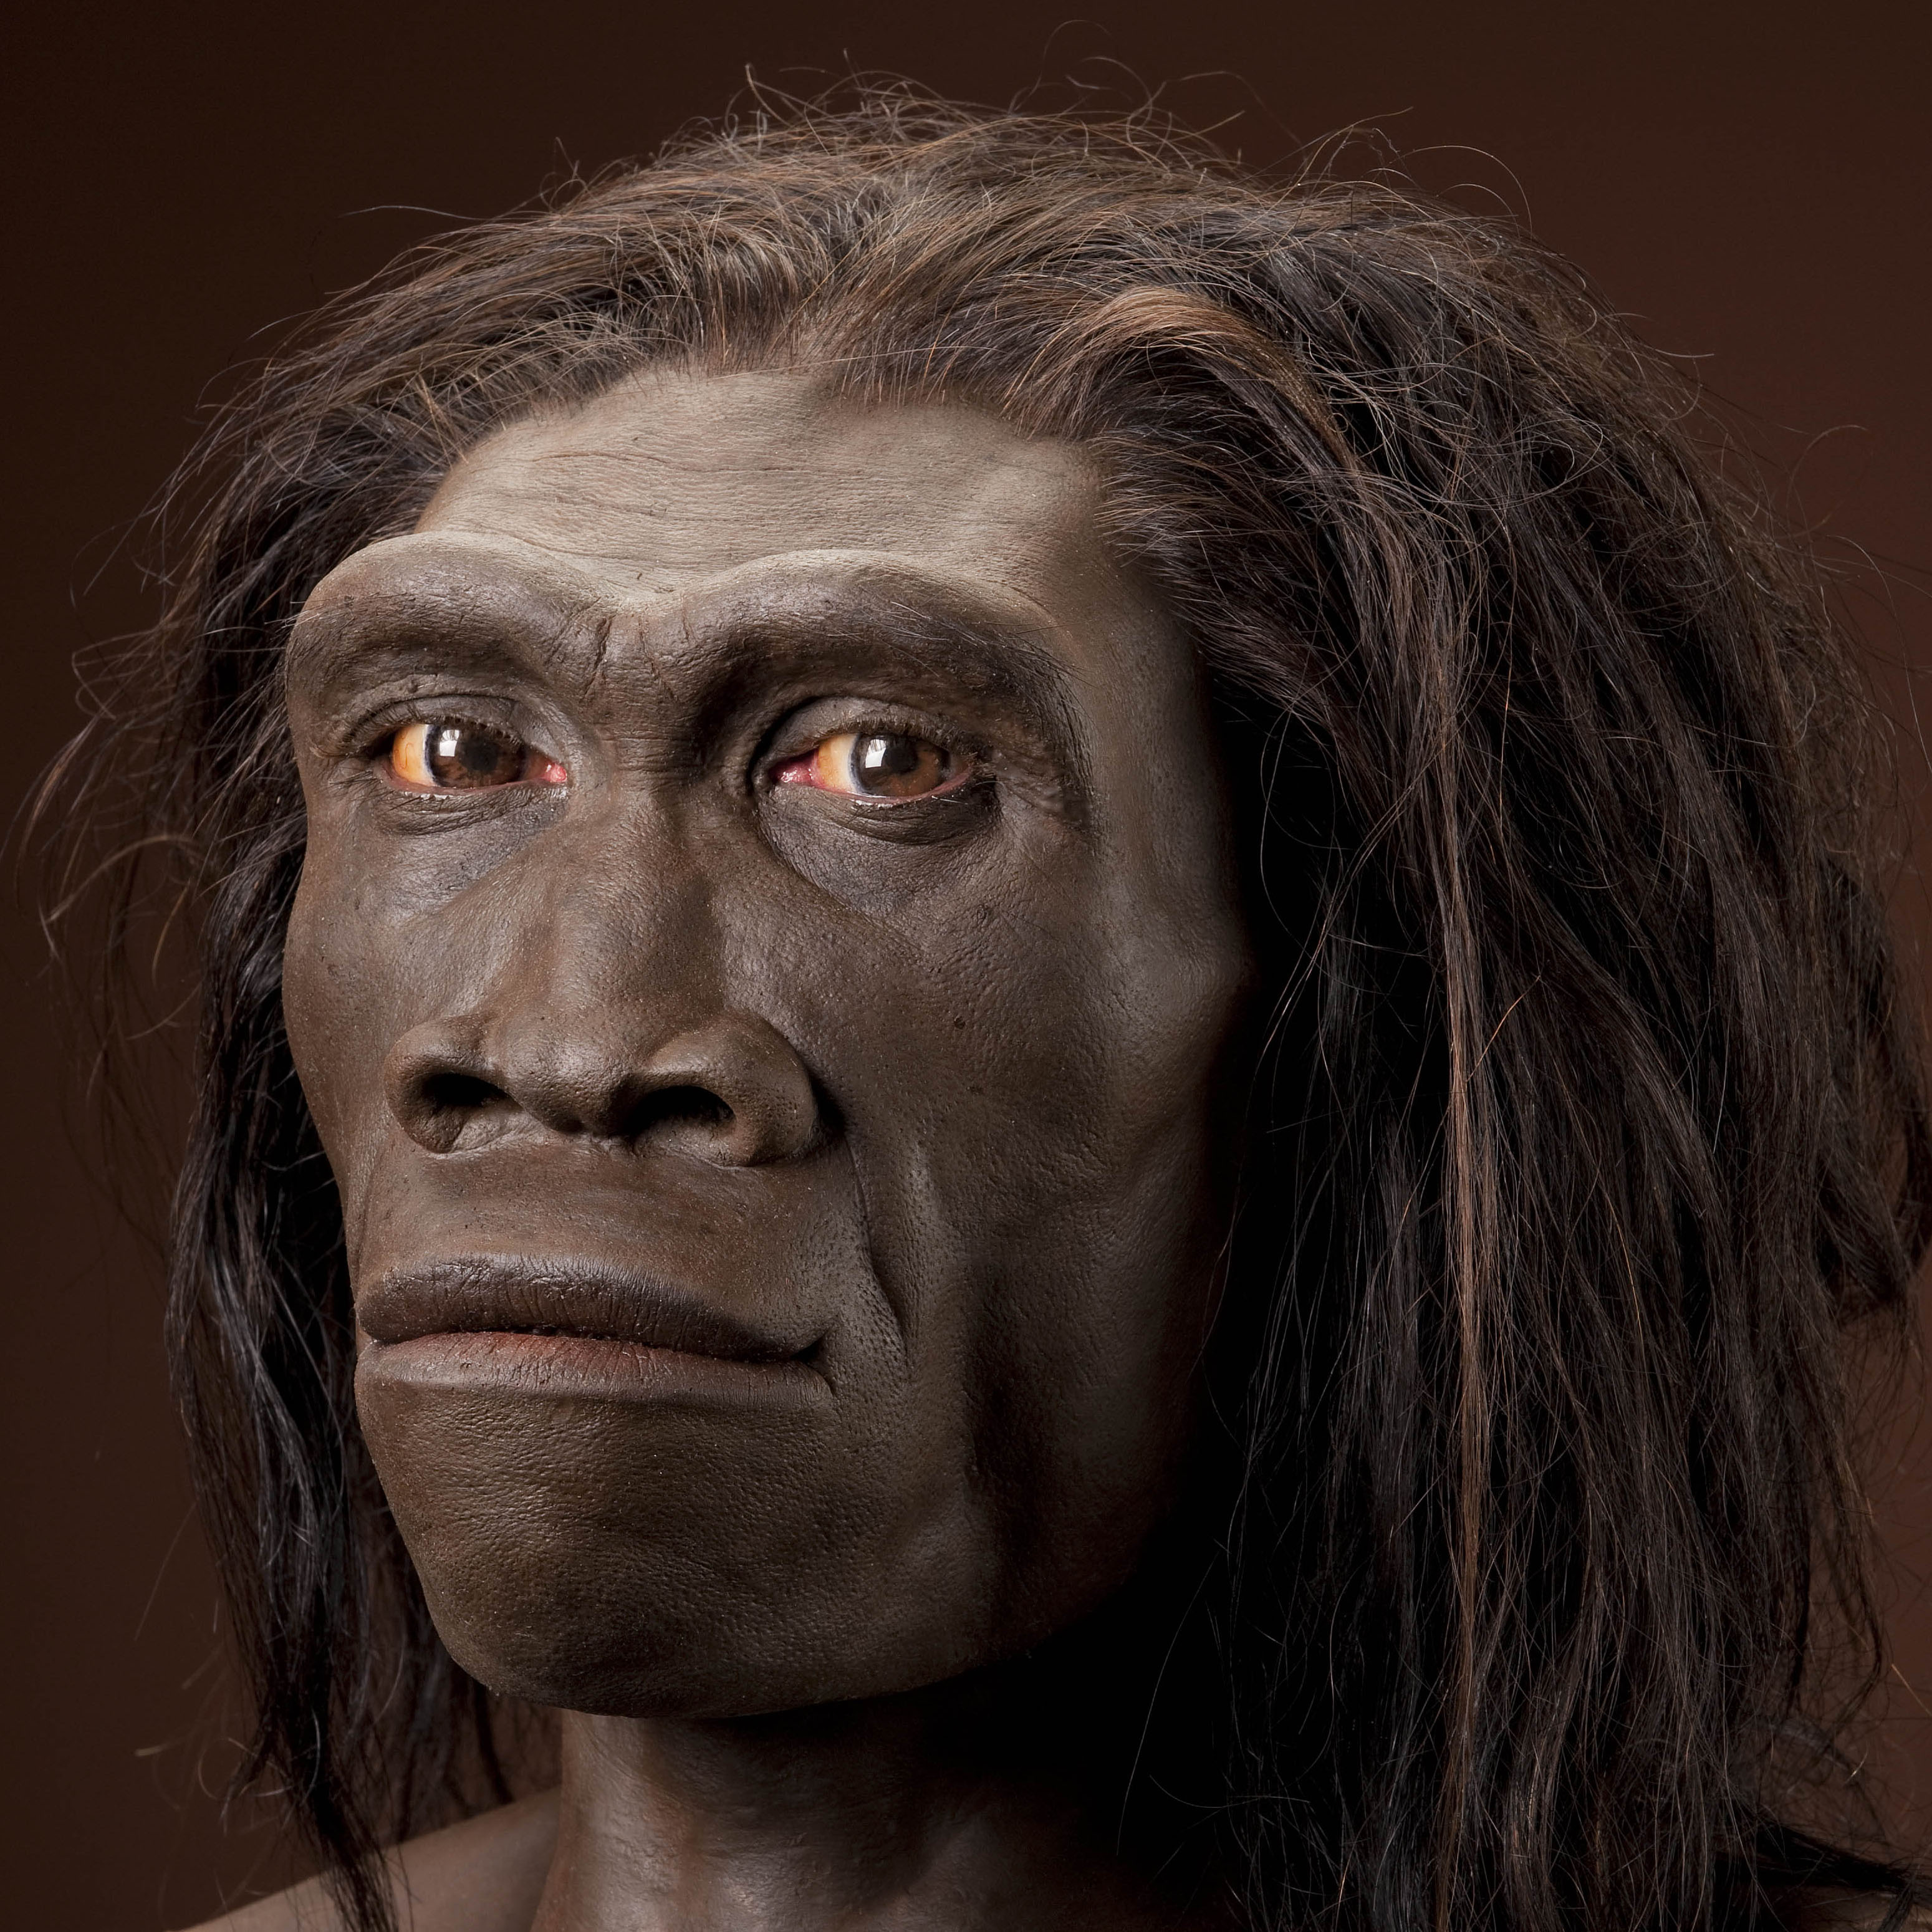 Imagenes De Bose >> Homo erectus, female. Reconstruction based on ER 3733 by John Gurche, 3/4 view, right. | The ...